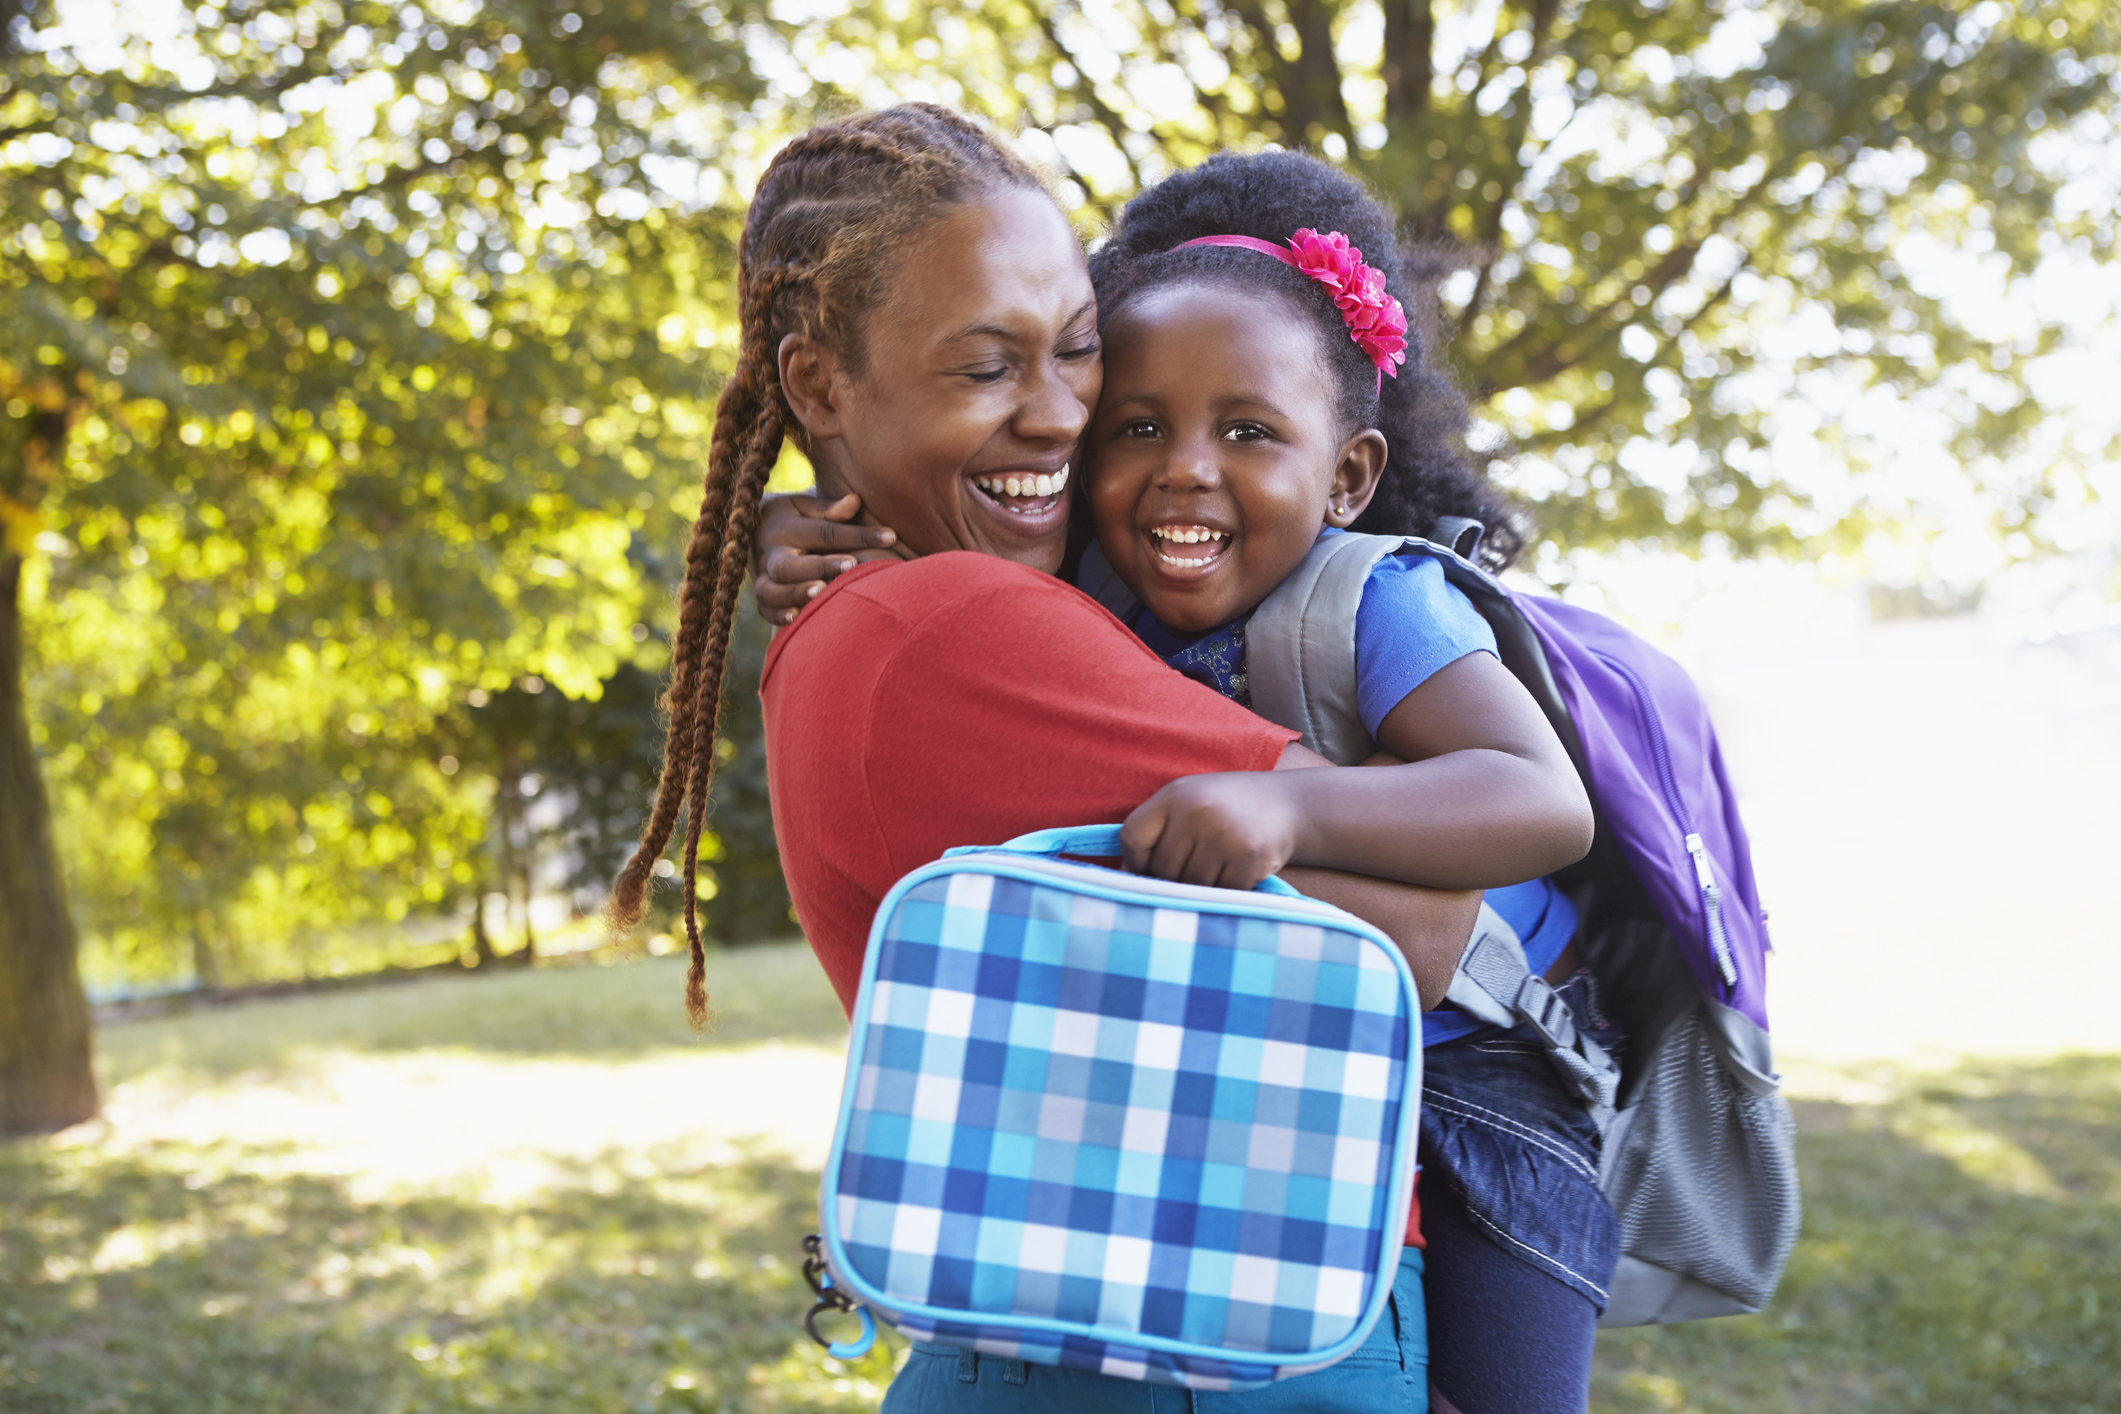 4 back-to-school hacks specifically for moms, because we know this is rough on you too